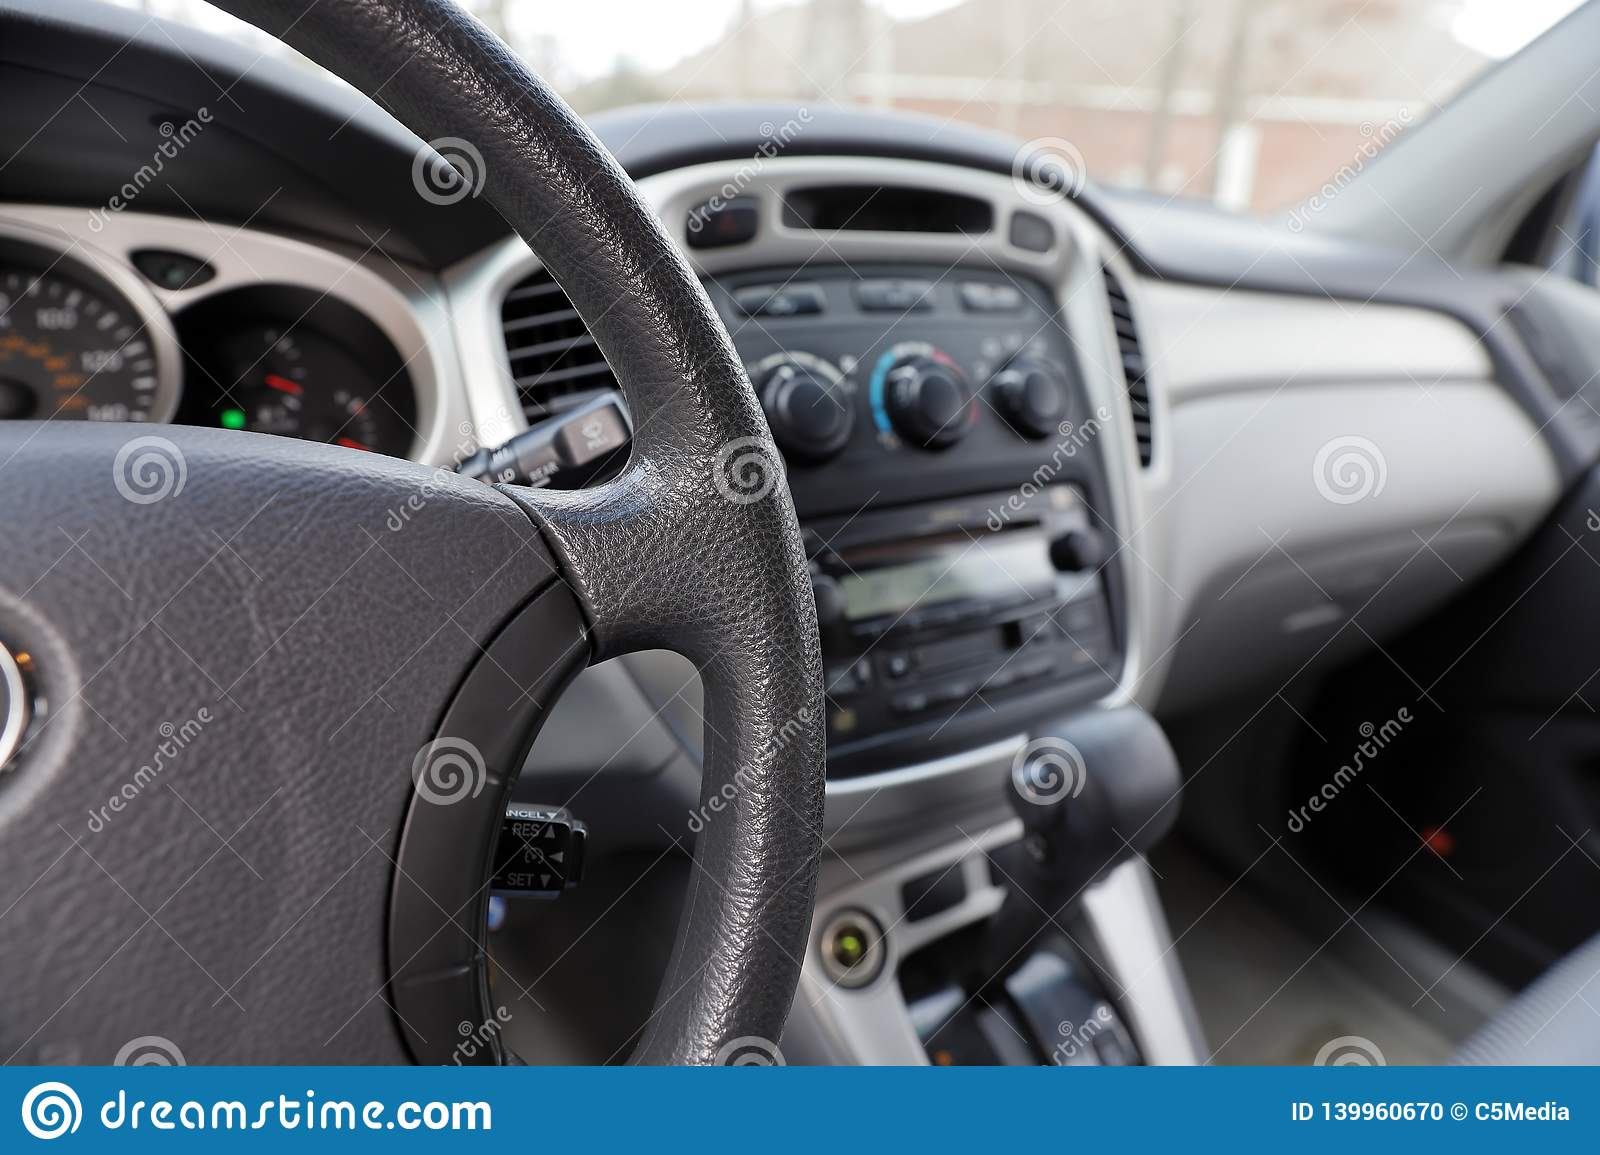 Automobile interior with steering wheel, gear shift and controls